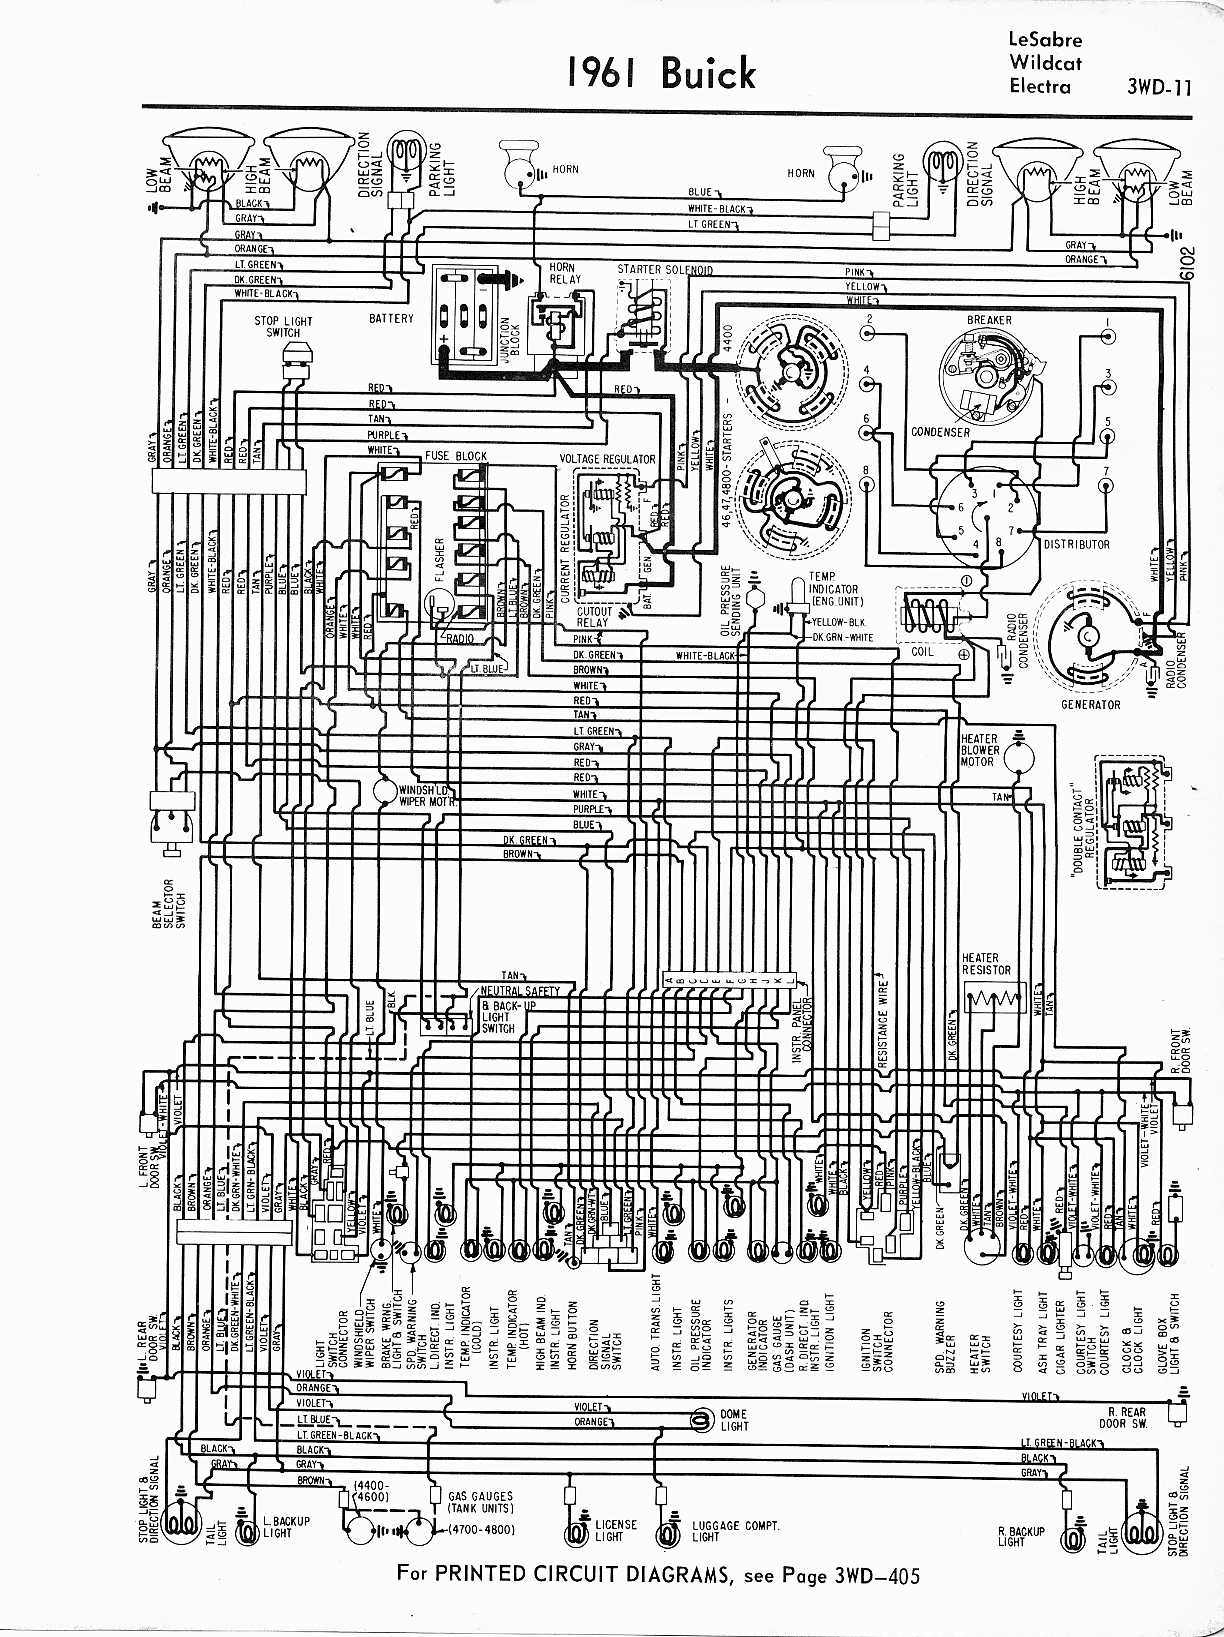 hight resolution of 2004 c6500 wiring diagram wiring diagram load 2004 gmc c6500 wiring diagram 2004 c6500 wiring diagram